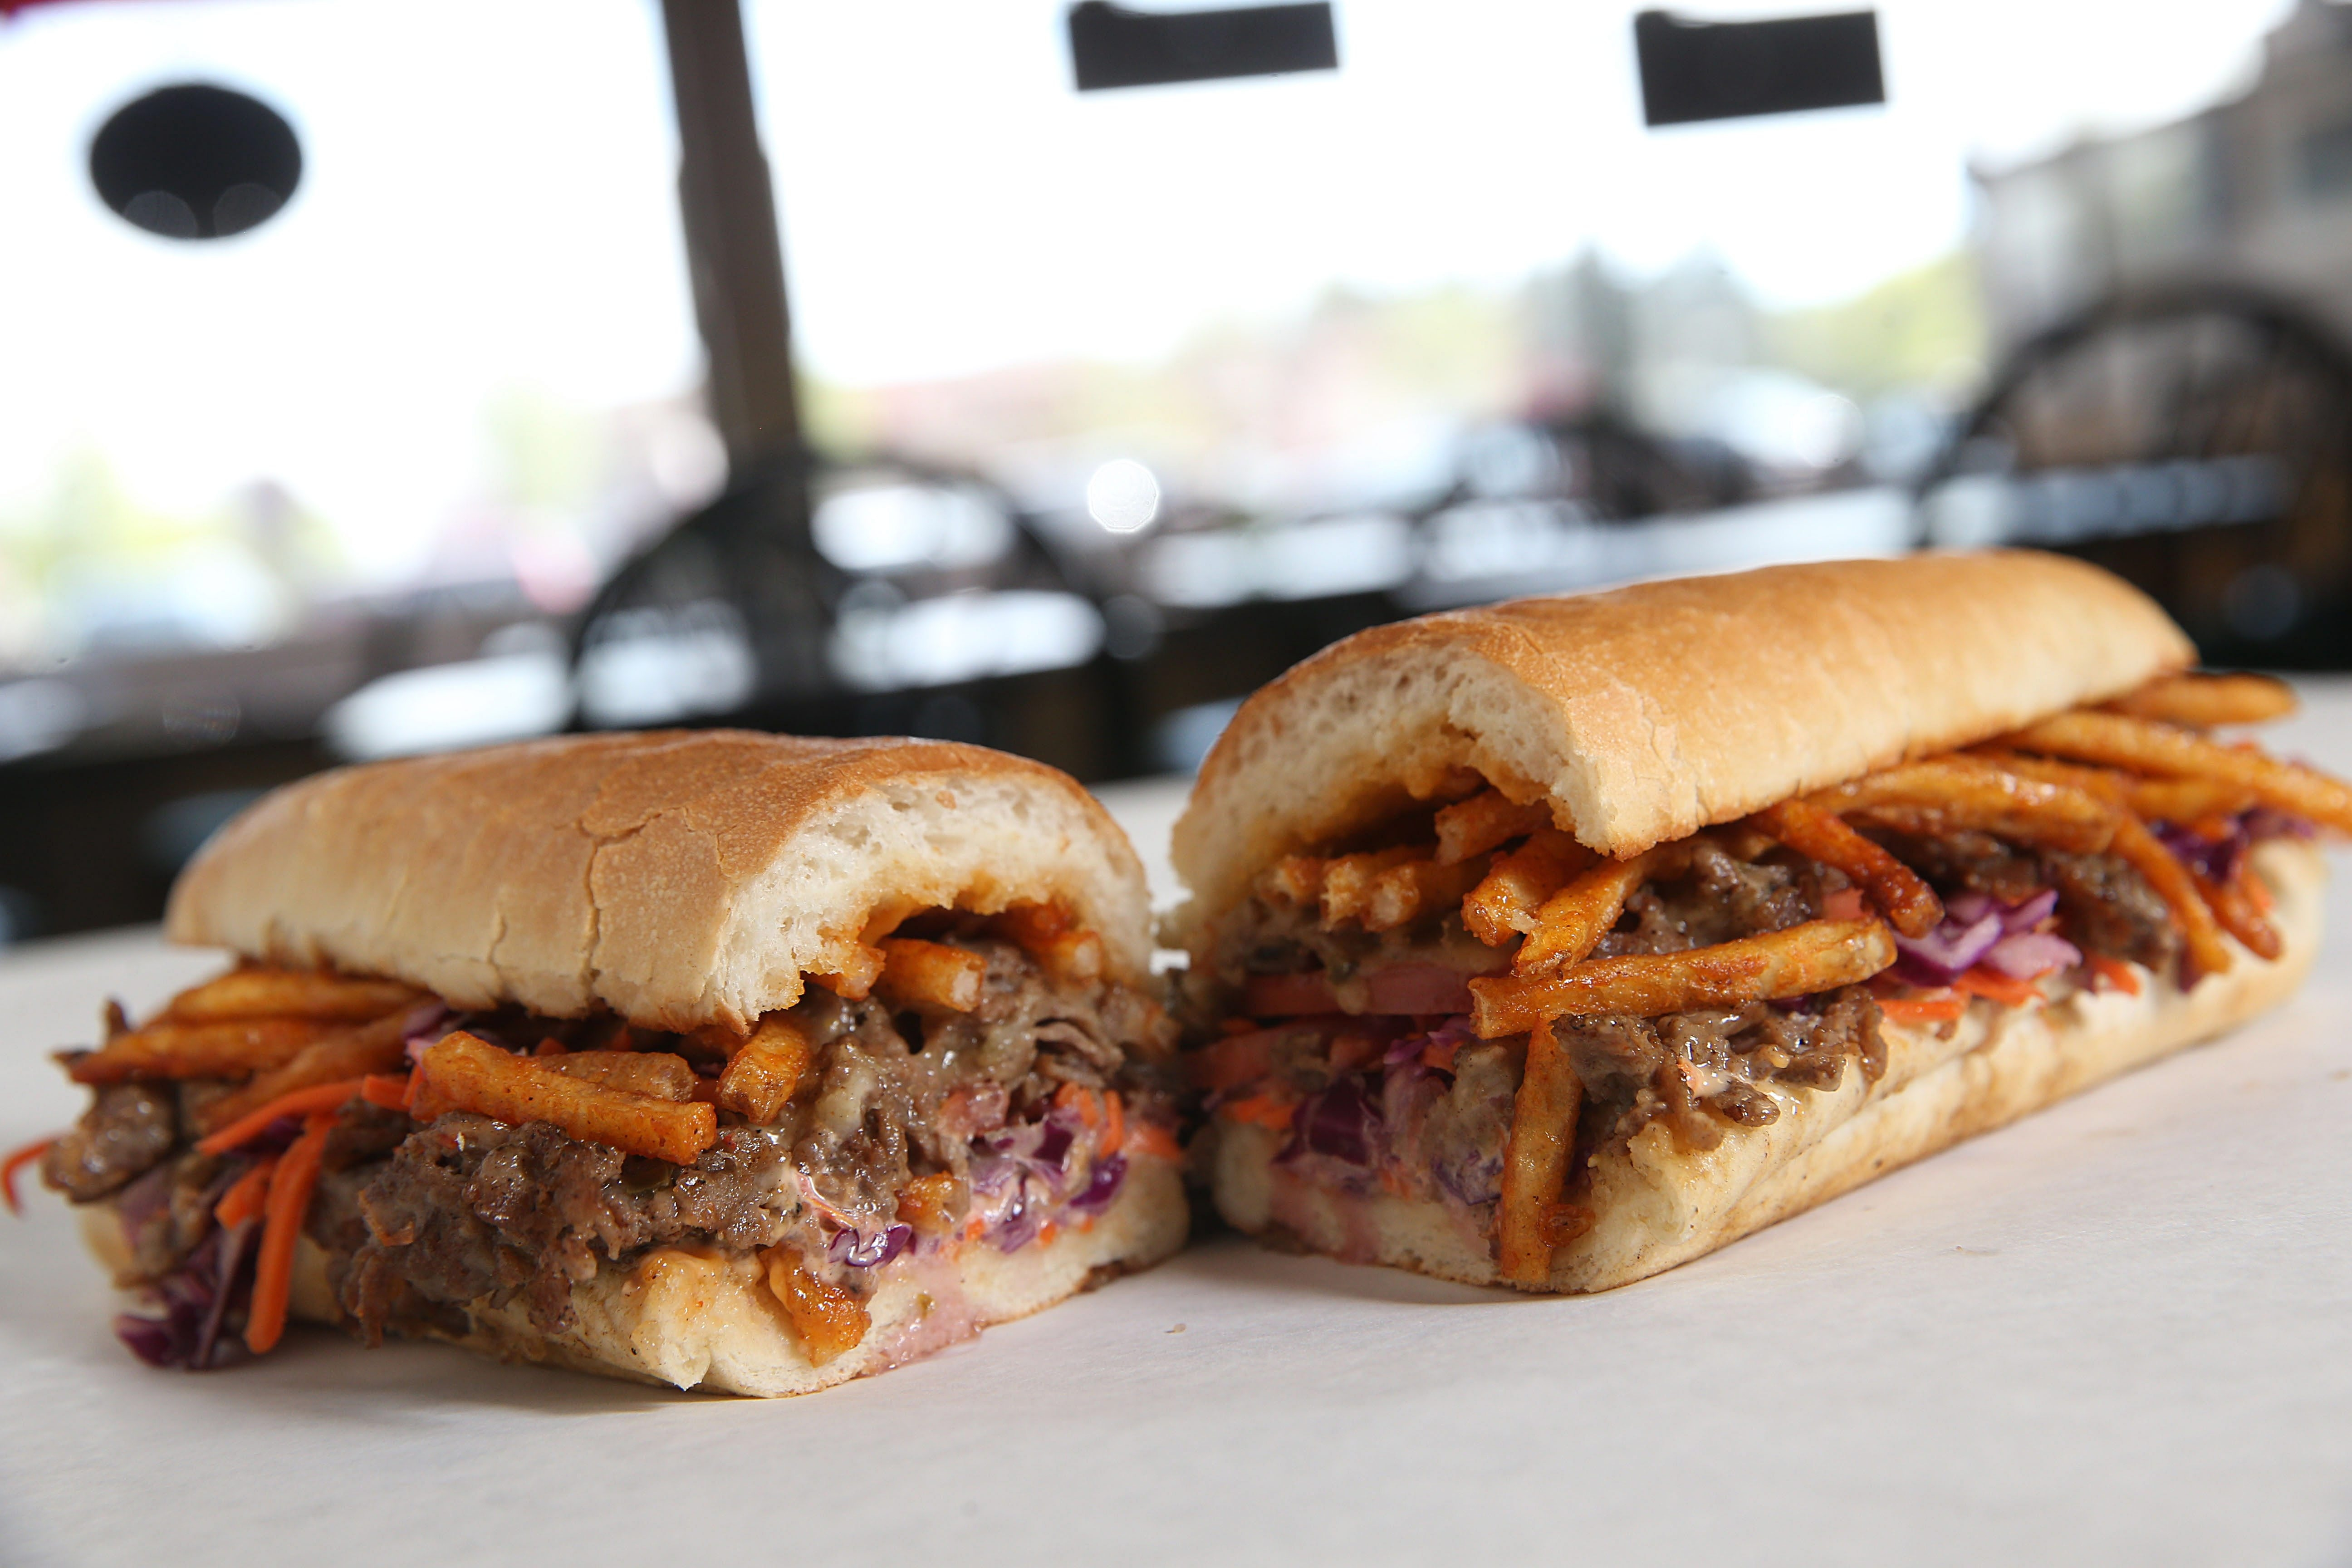 The Spicy Dragon at Jonny C's features chopped steak, melted cheese, seasoned french fries, sweet chili coleslaw, Sriracha mayo and tomato all on a toasted roll.